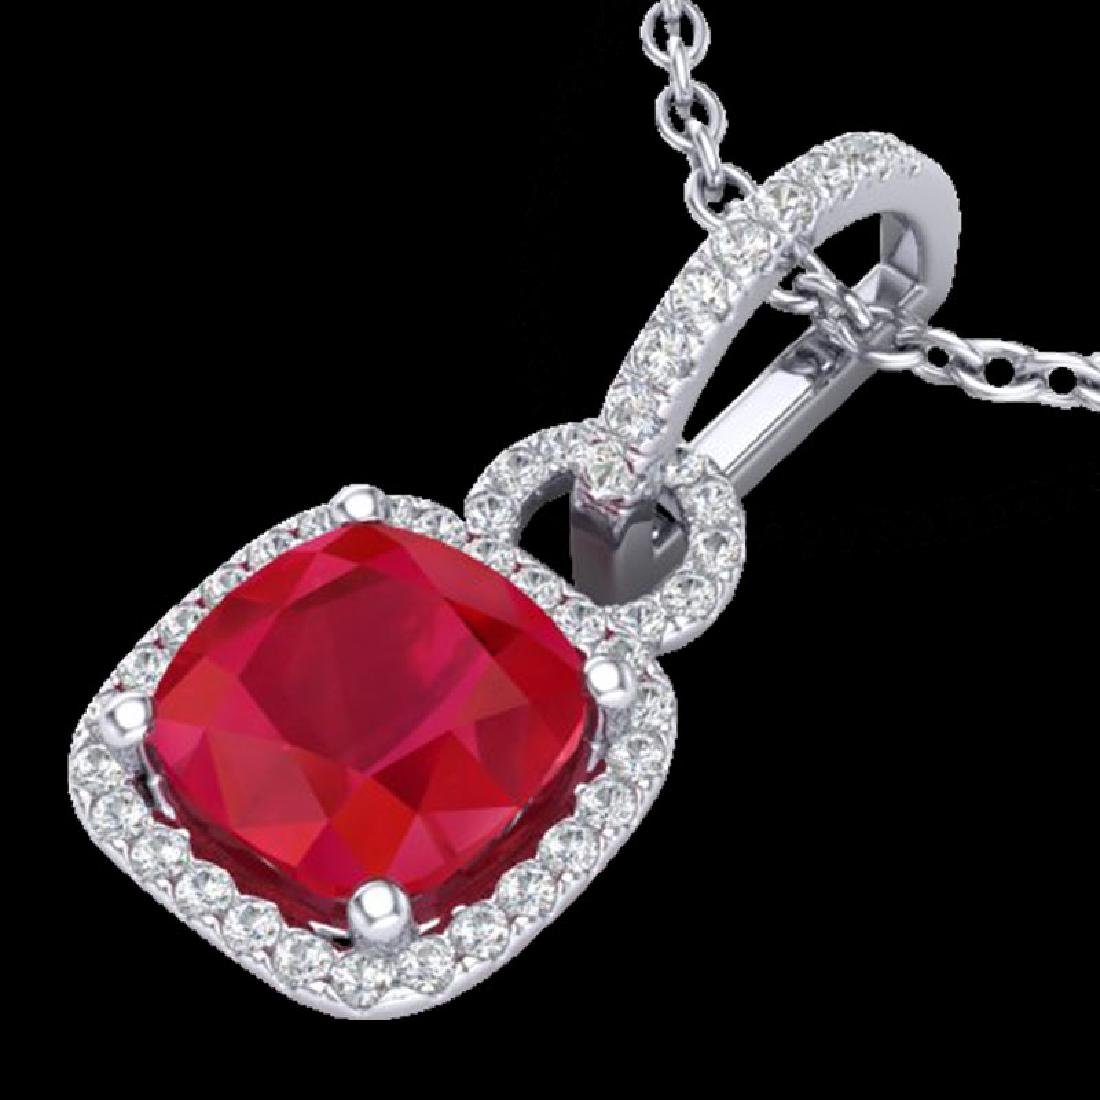 3 CTW Ruby & Micro VS/SI Diamond Necklace 18K White